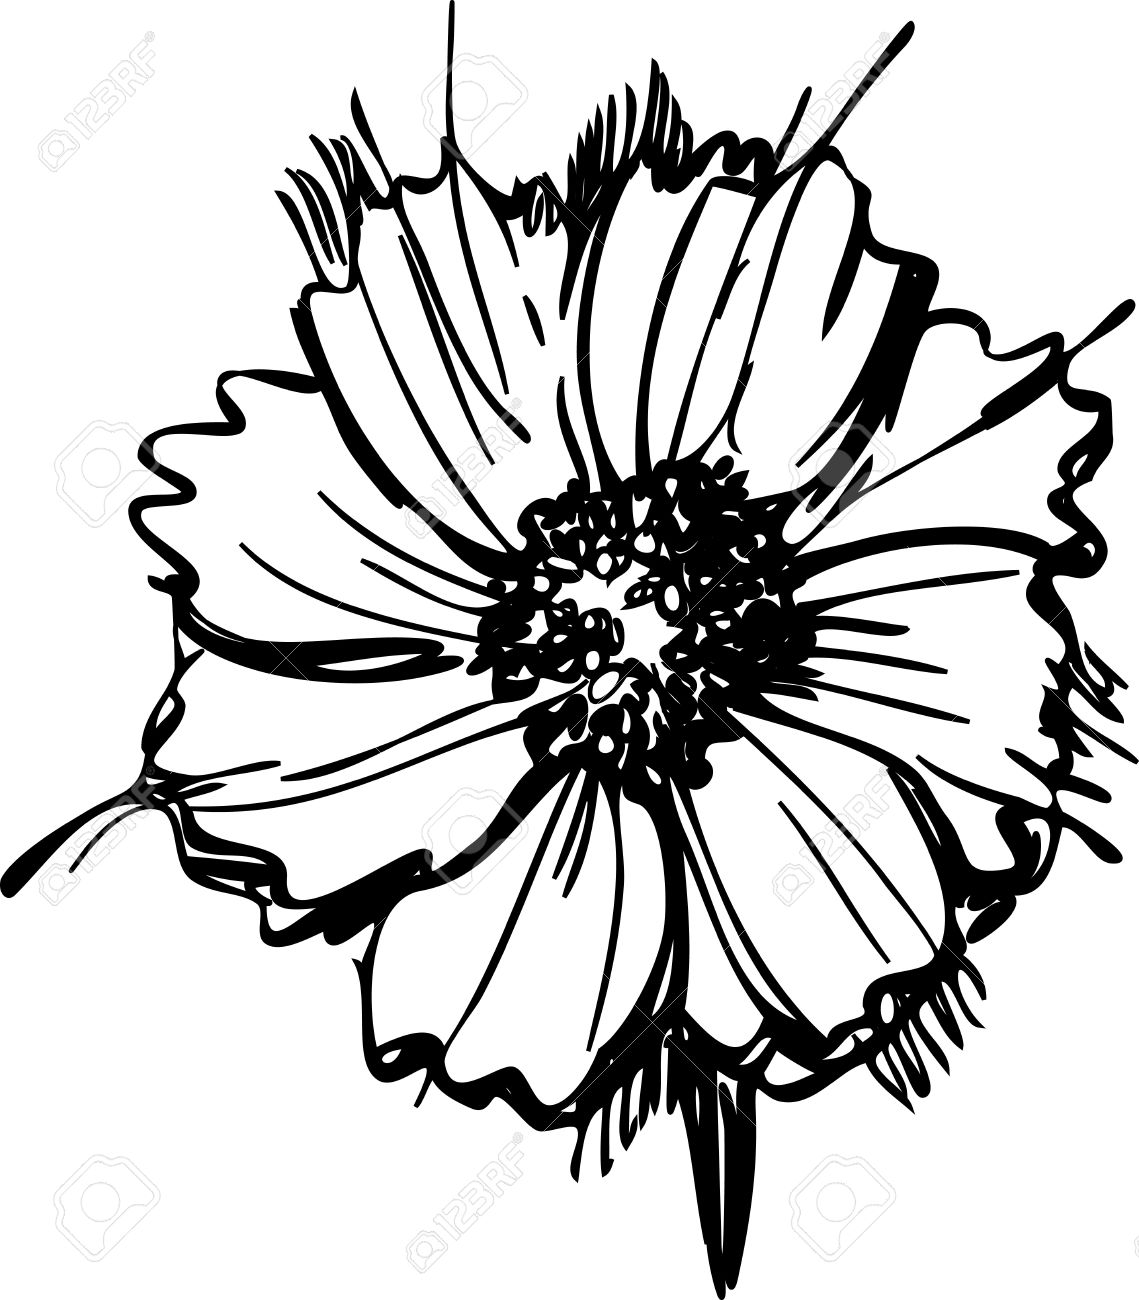 1139x1300 Sketch Wild Flower Resembling A Daisy Royalty Free Cliparts